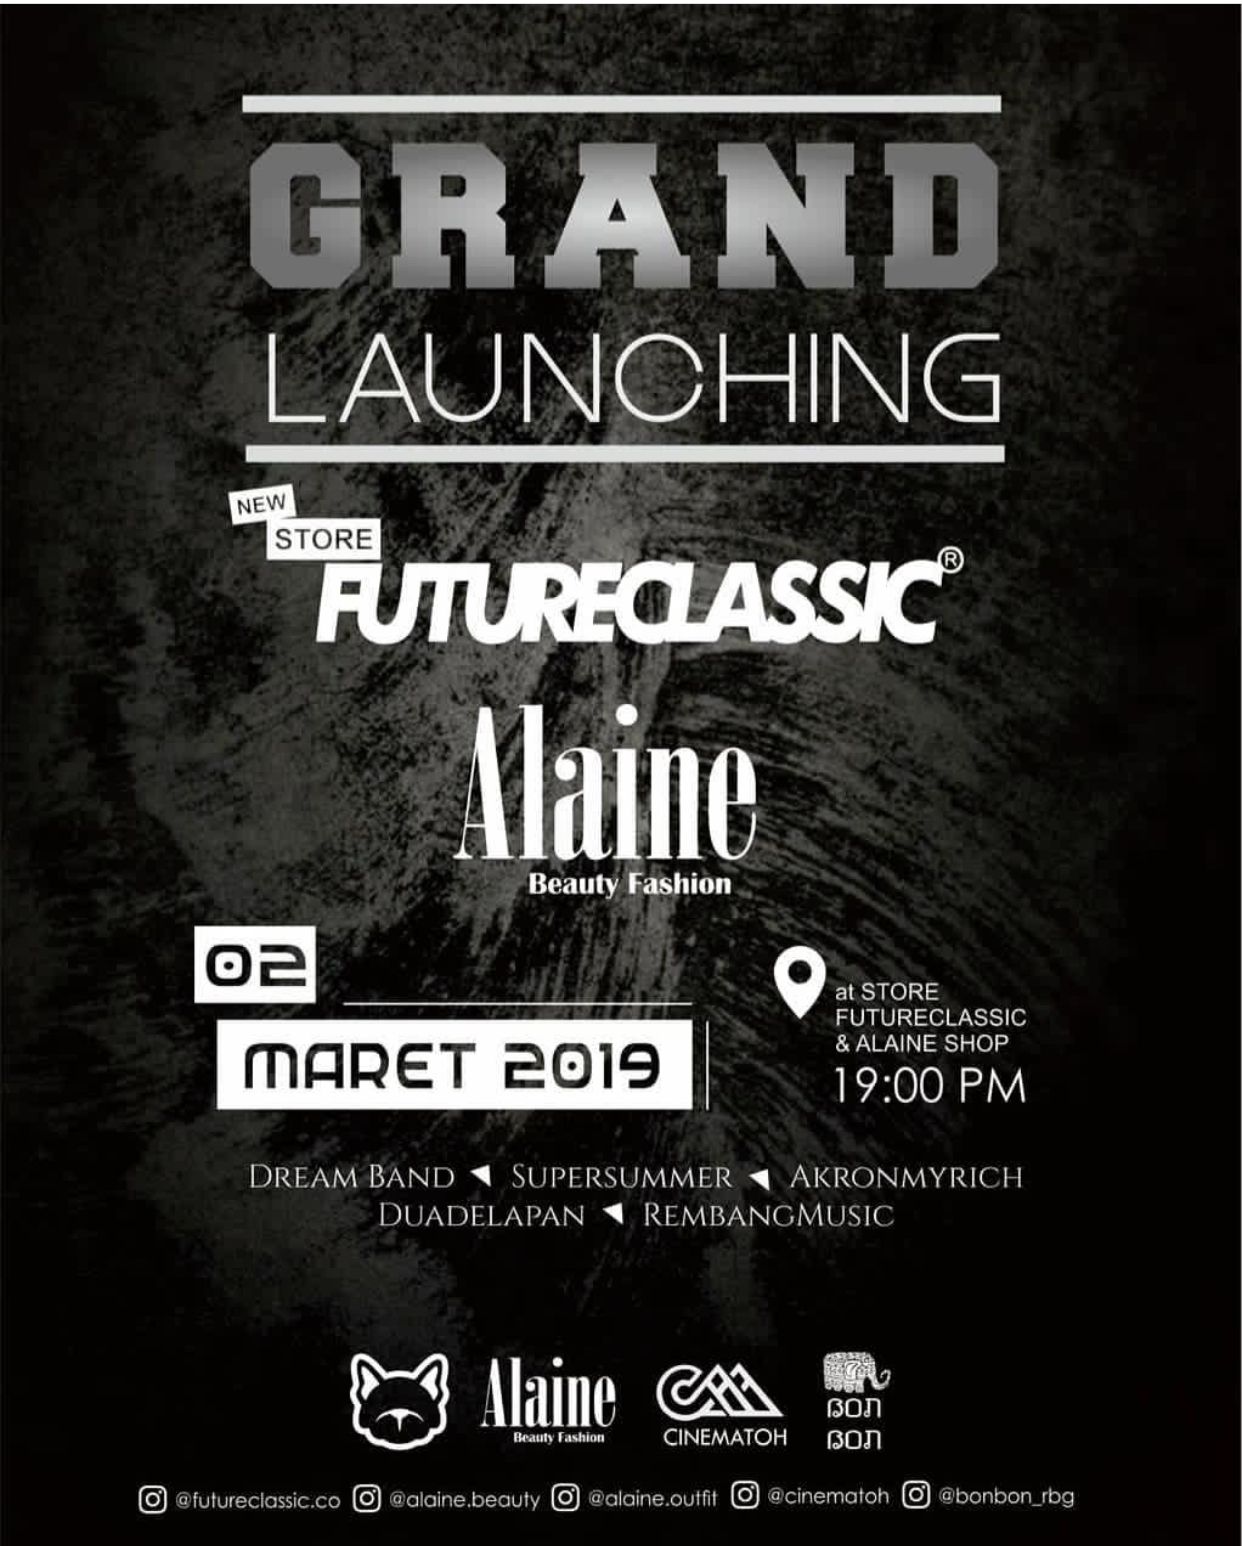 EVENT REMBANG - GRAND LAUNCHING FUTURE CLASSIC ALAINE SHOP